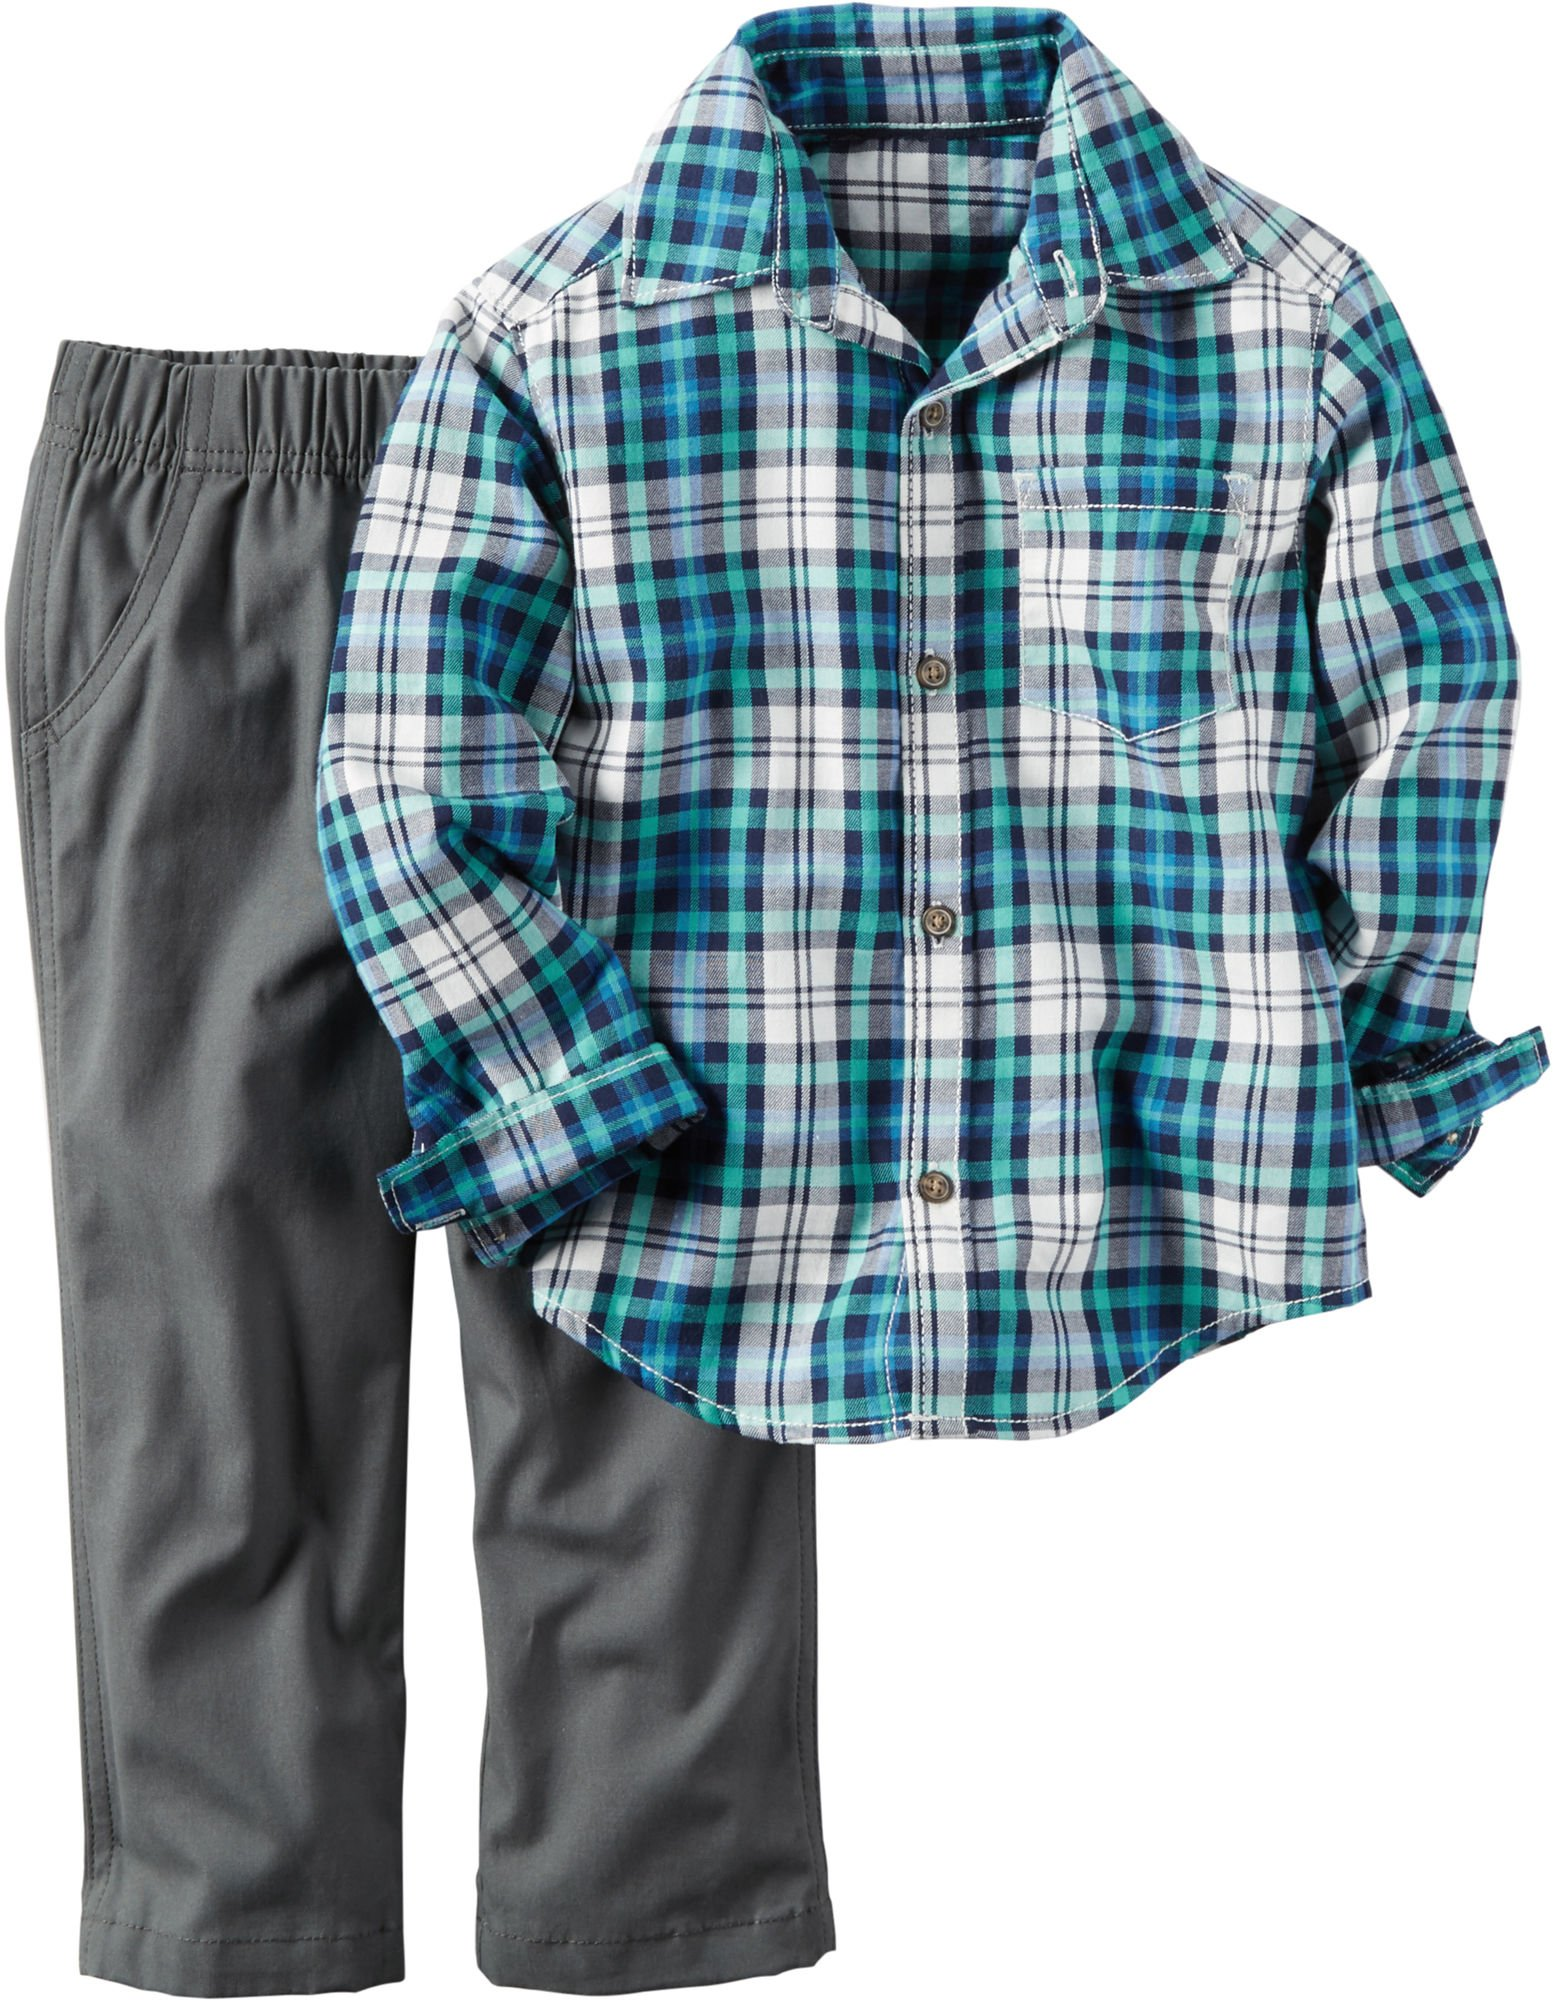 Carter's Boys' 2 Pc Playwear Sets 249g259, Plaid, 3T